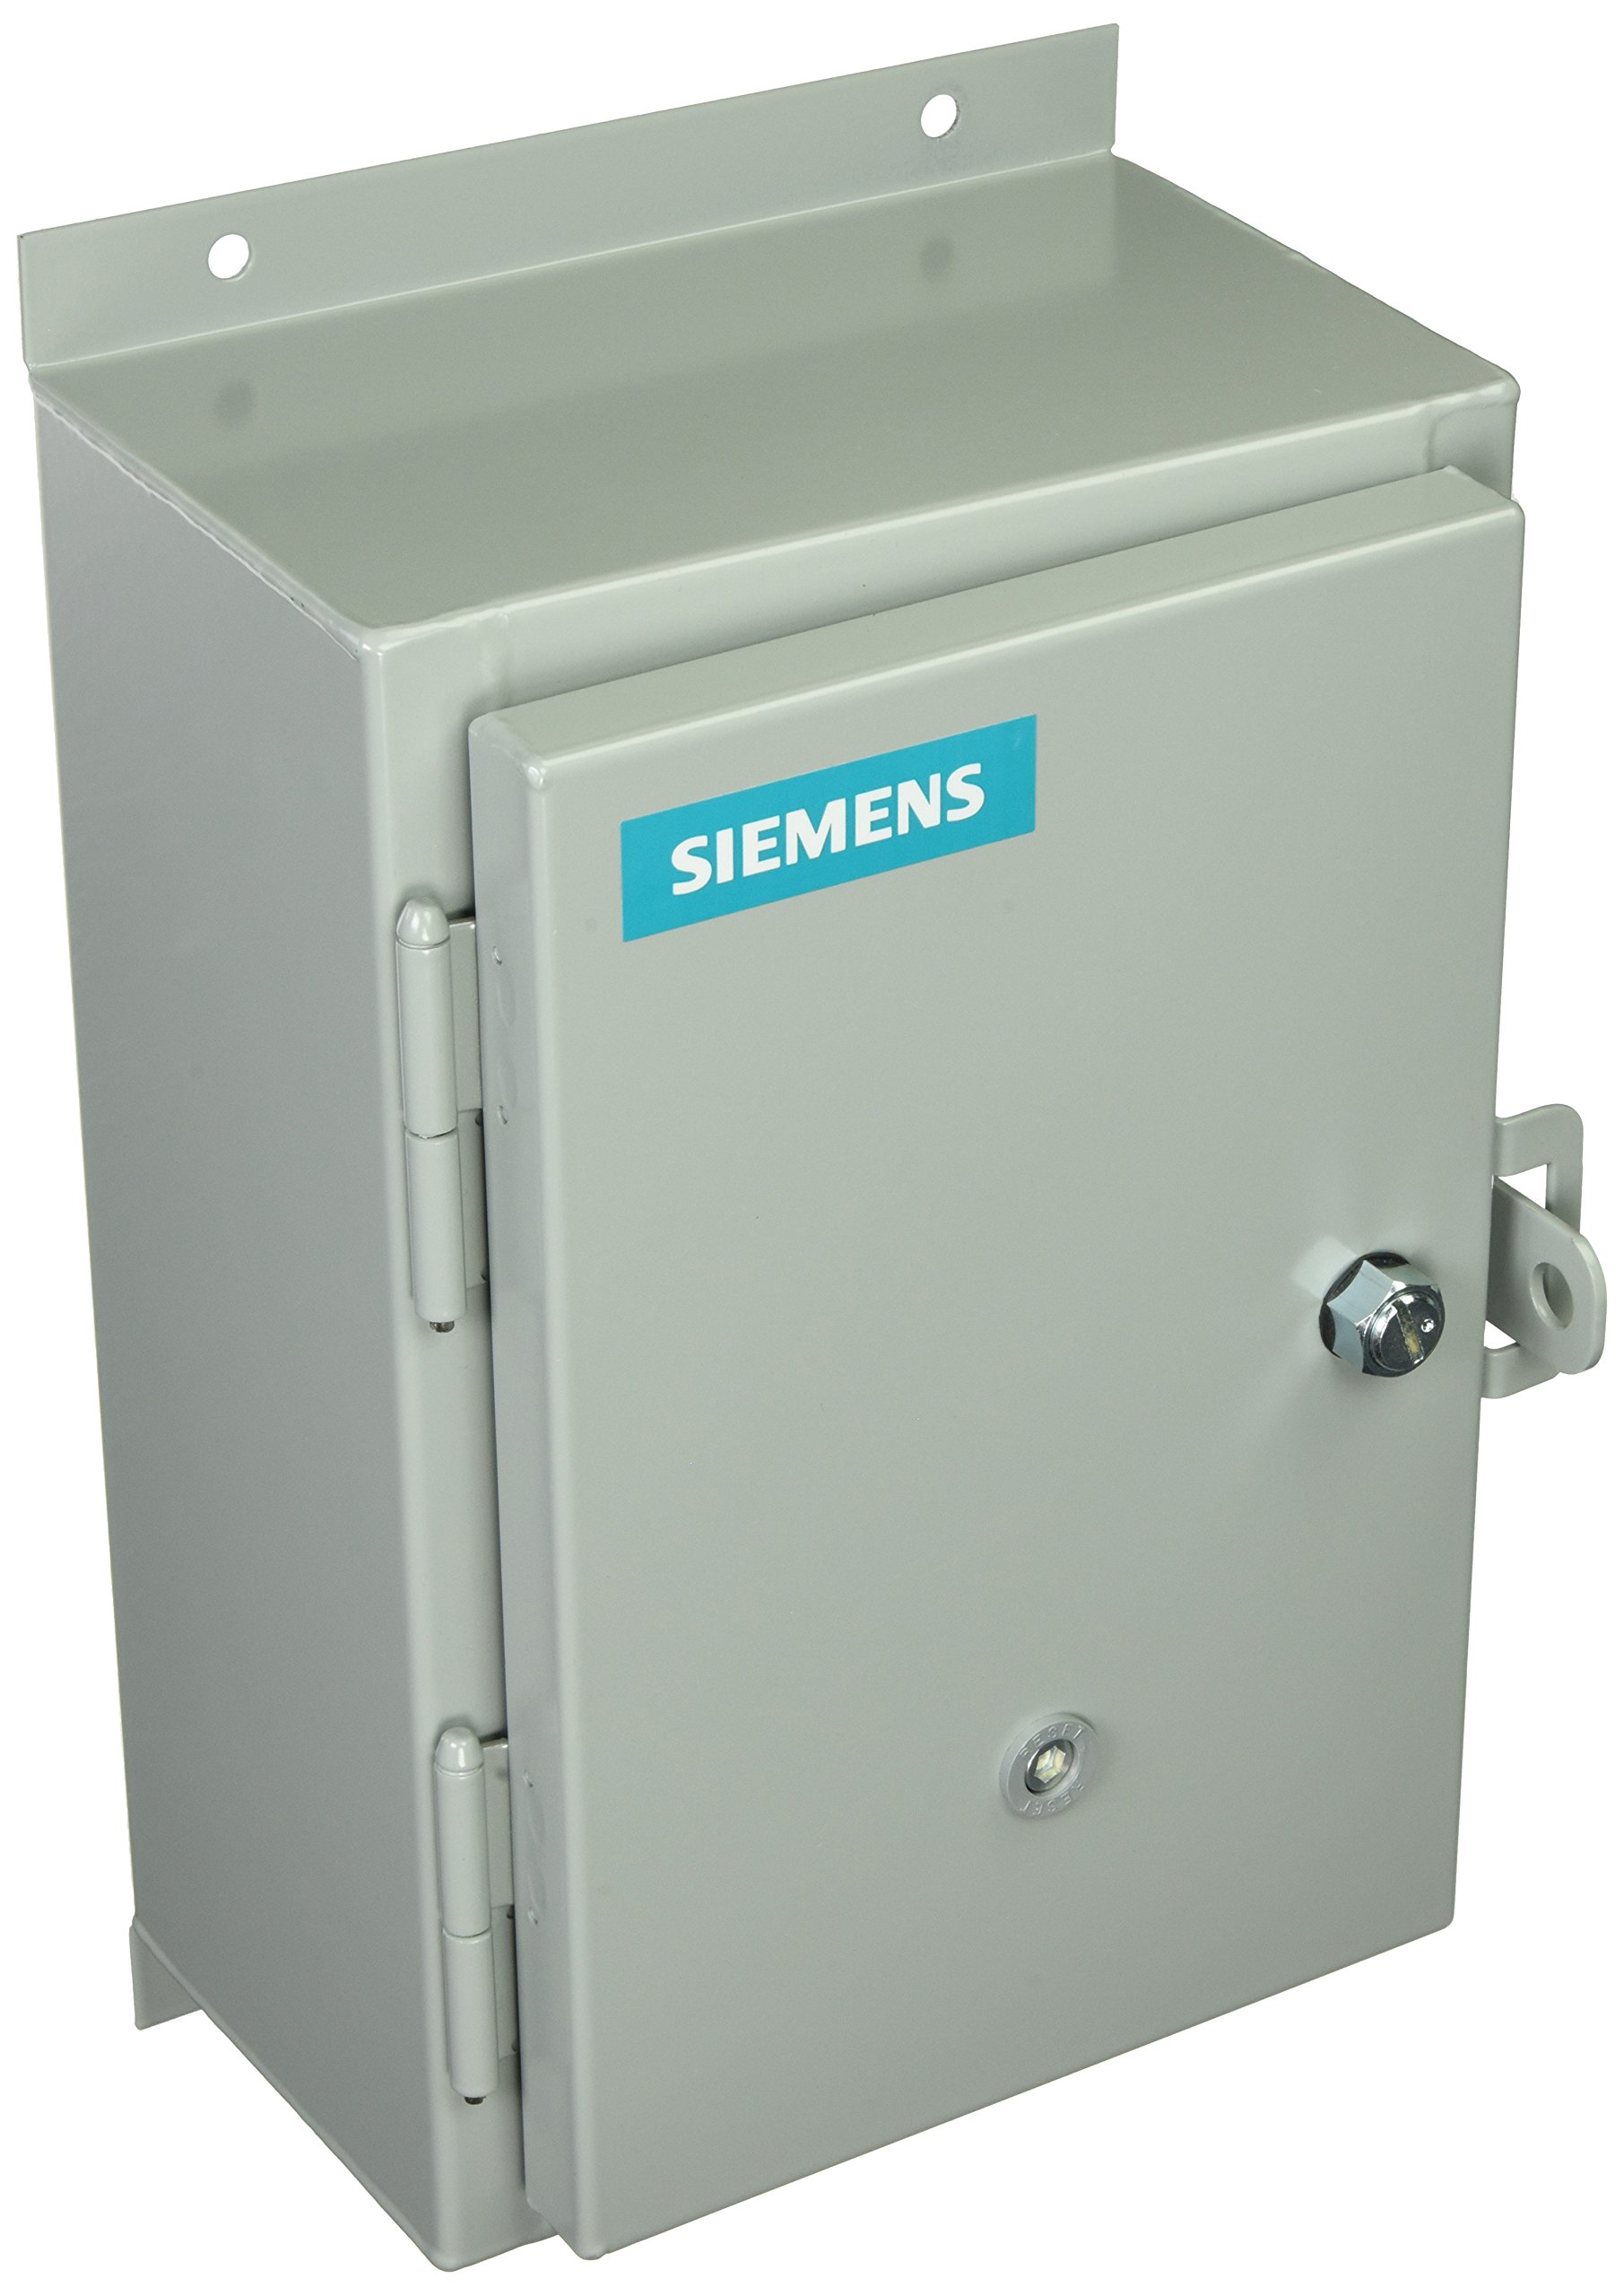 Siemens 14DUD320F Heavy Duty Motor Starter, Solid State Overload, Auto/Manual Reset, Open Type, NEMA 12/3 and 3R Weatherproof Enclosure, 3 Phase, 3 Pole, 1 NEMA Size, 5.5-22A Amp Range, A1 Frame Size, 120 Separate Control 60Hz Coil Voltage